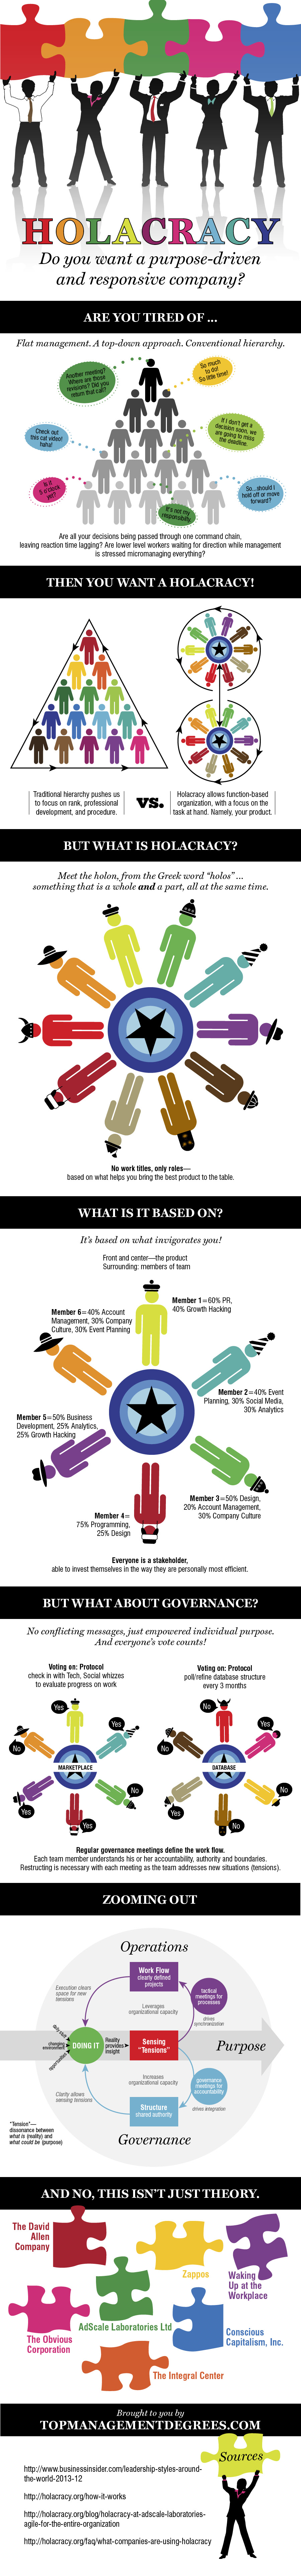 Holacracy_infography